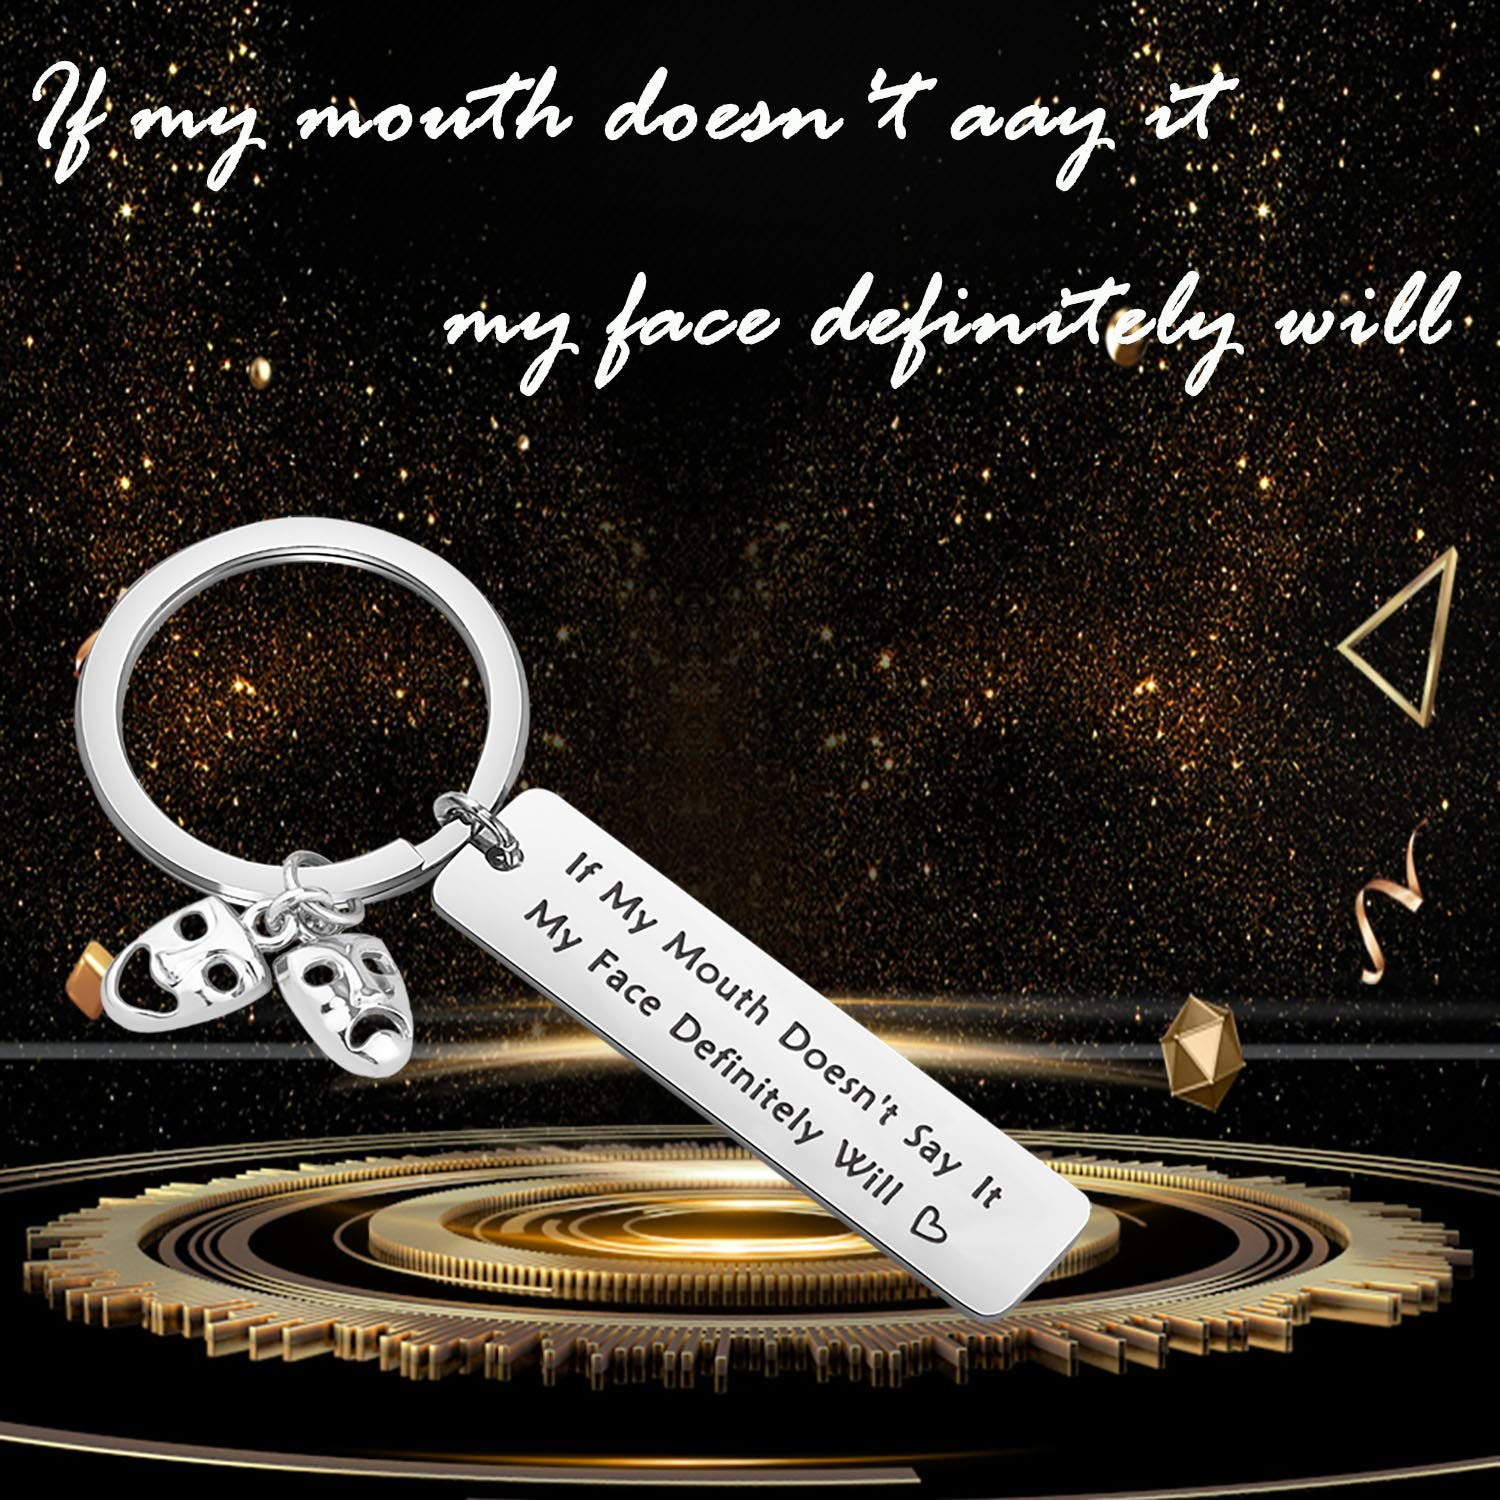 bobauna If My Mouth Doesnt Say it My Face Definitely Will Theatre mask Keychain Funny Gift for Actor Acting Teacher Student